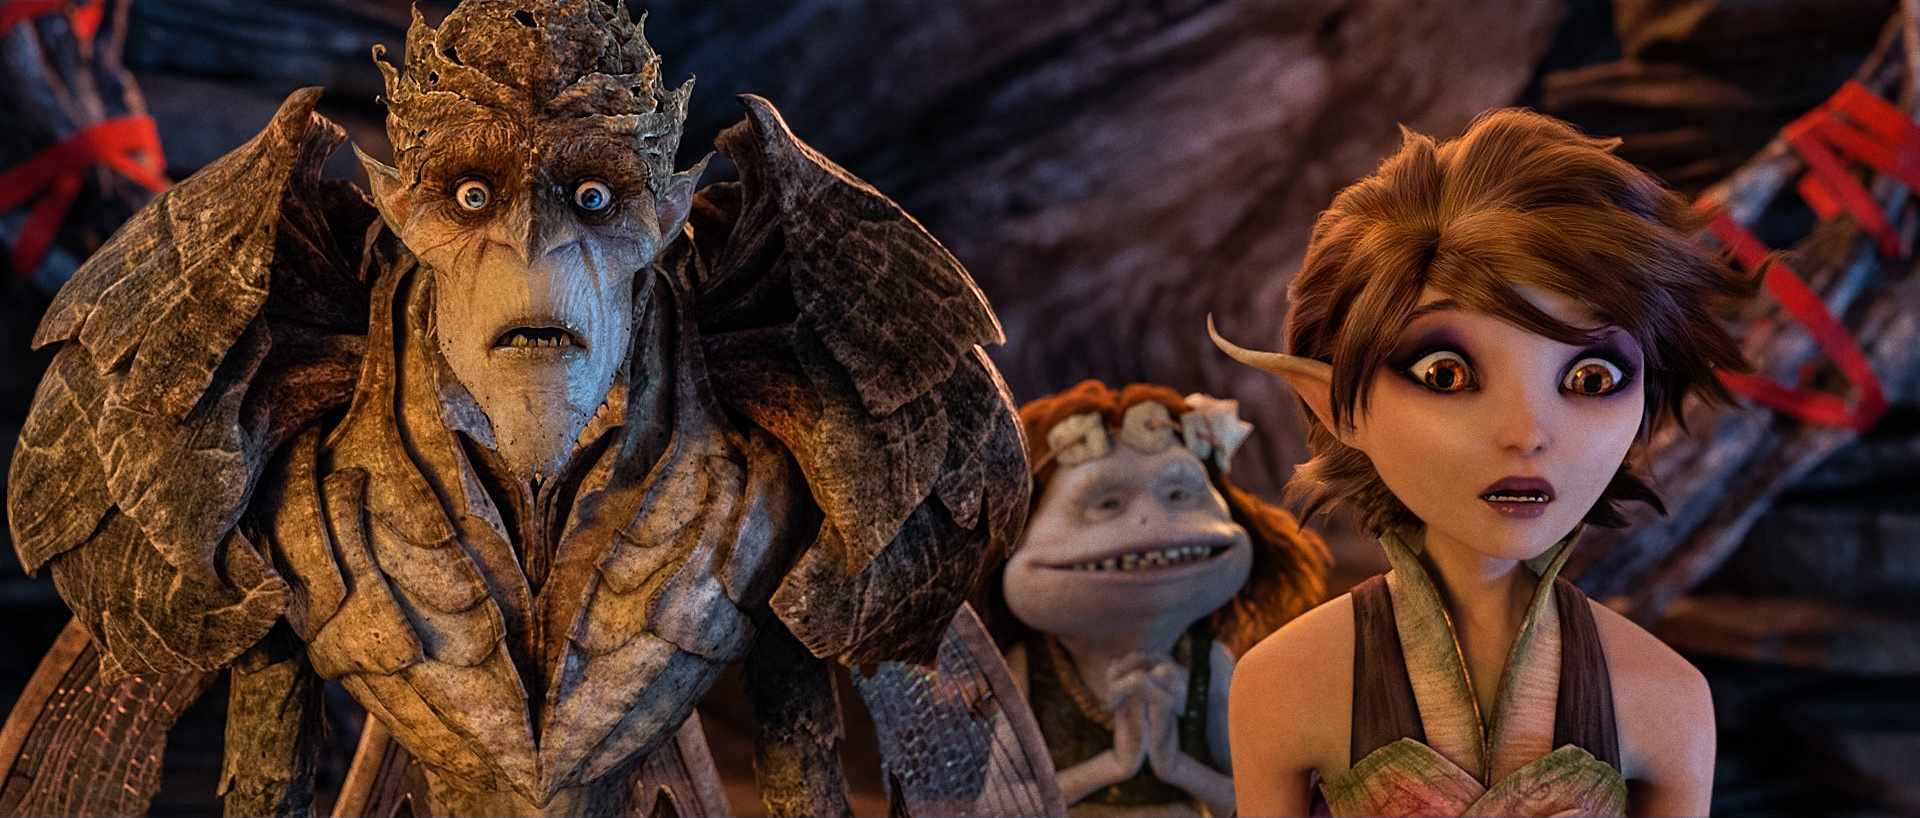 STRANGE MAGIC DVD Available May 19th, 2015!